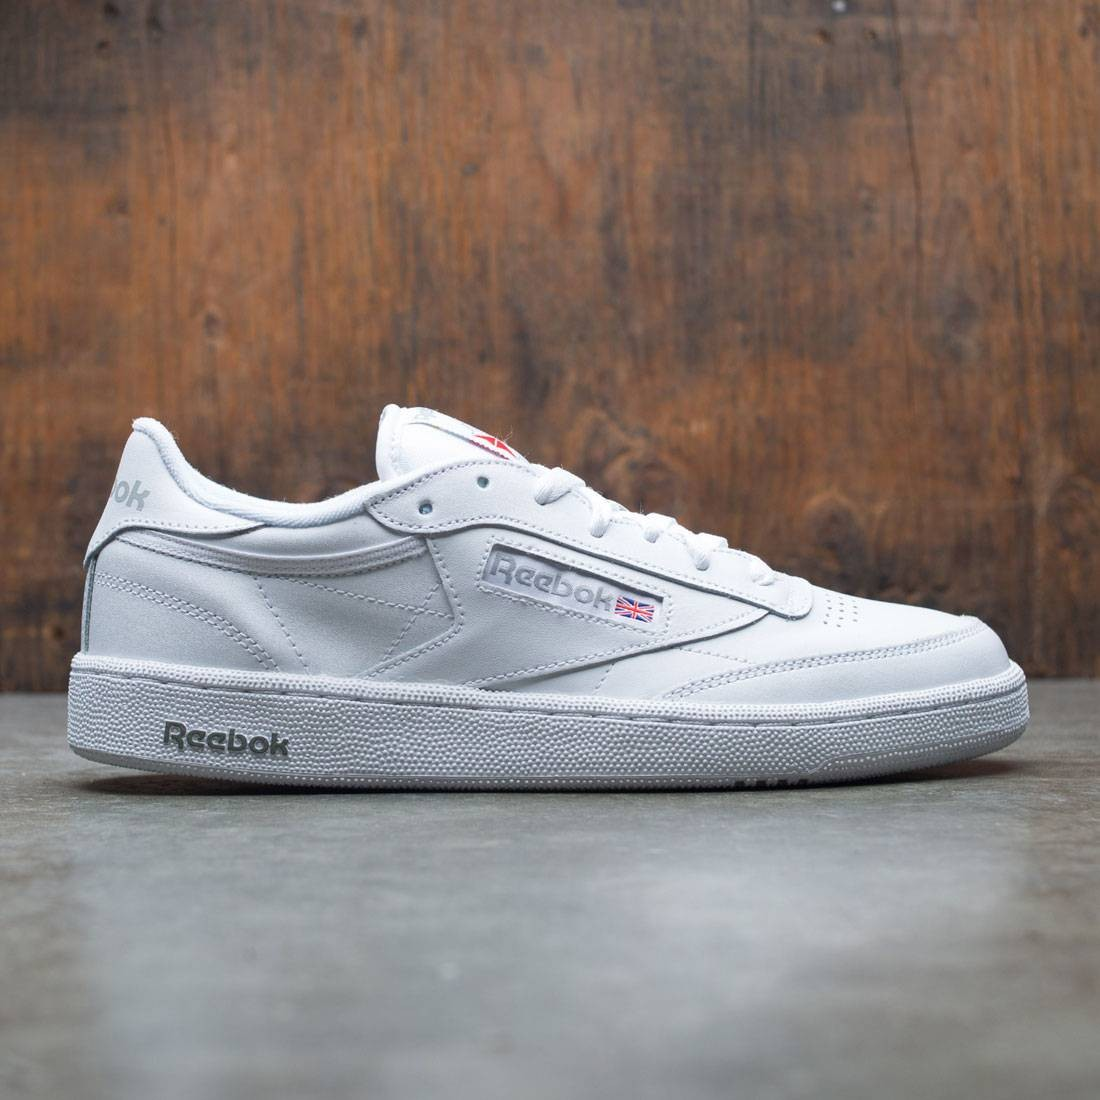 C Sheer Club Men Grey 85white Reebok PkOlwuZiTX